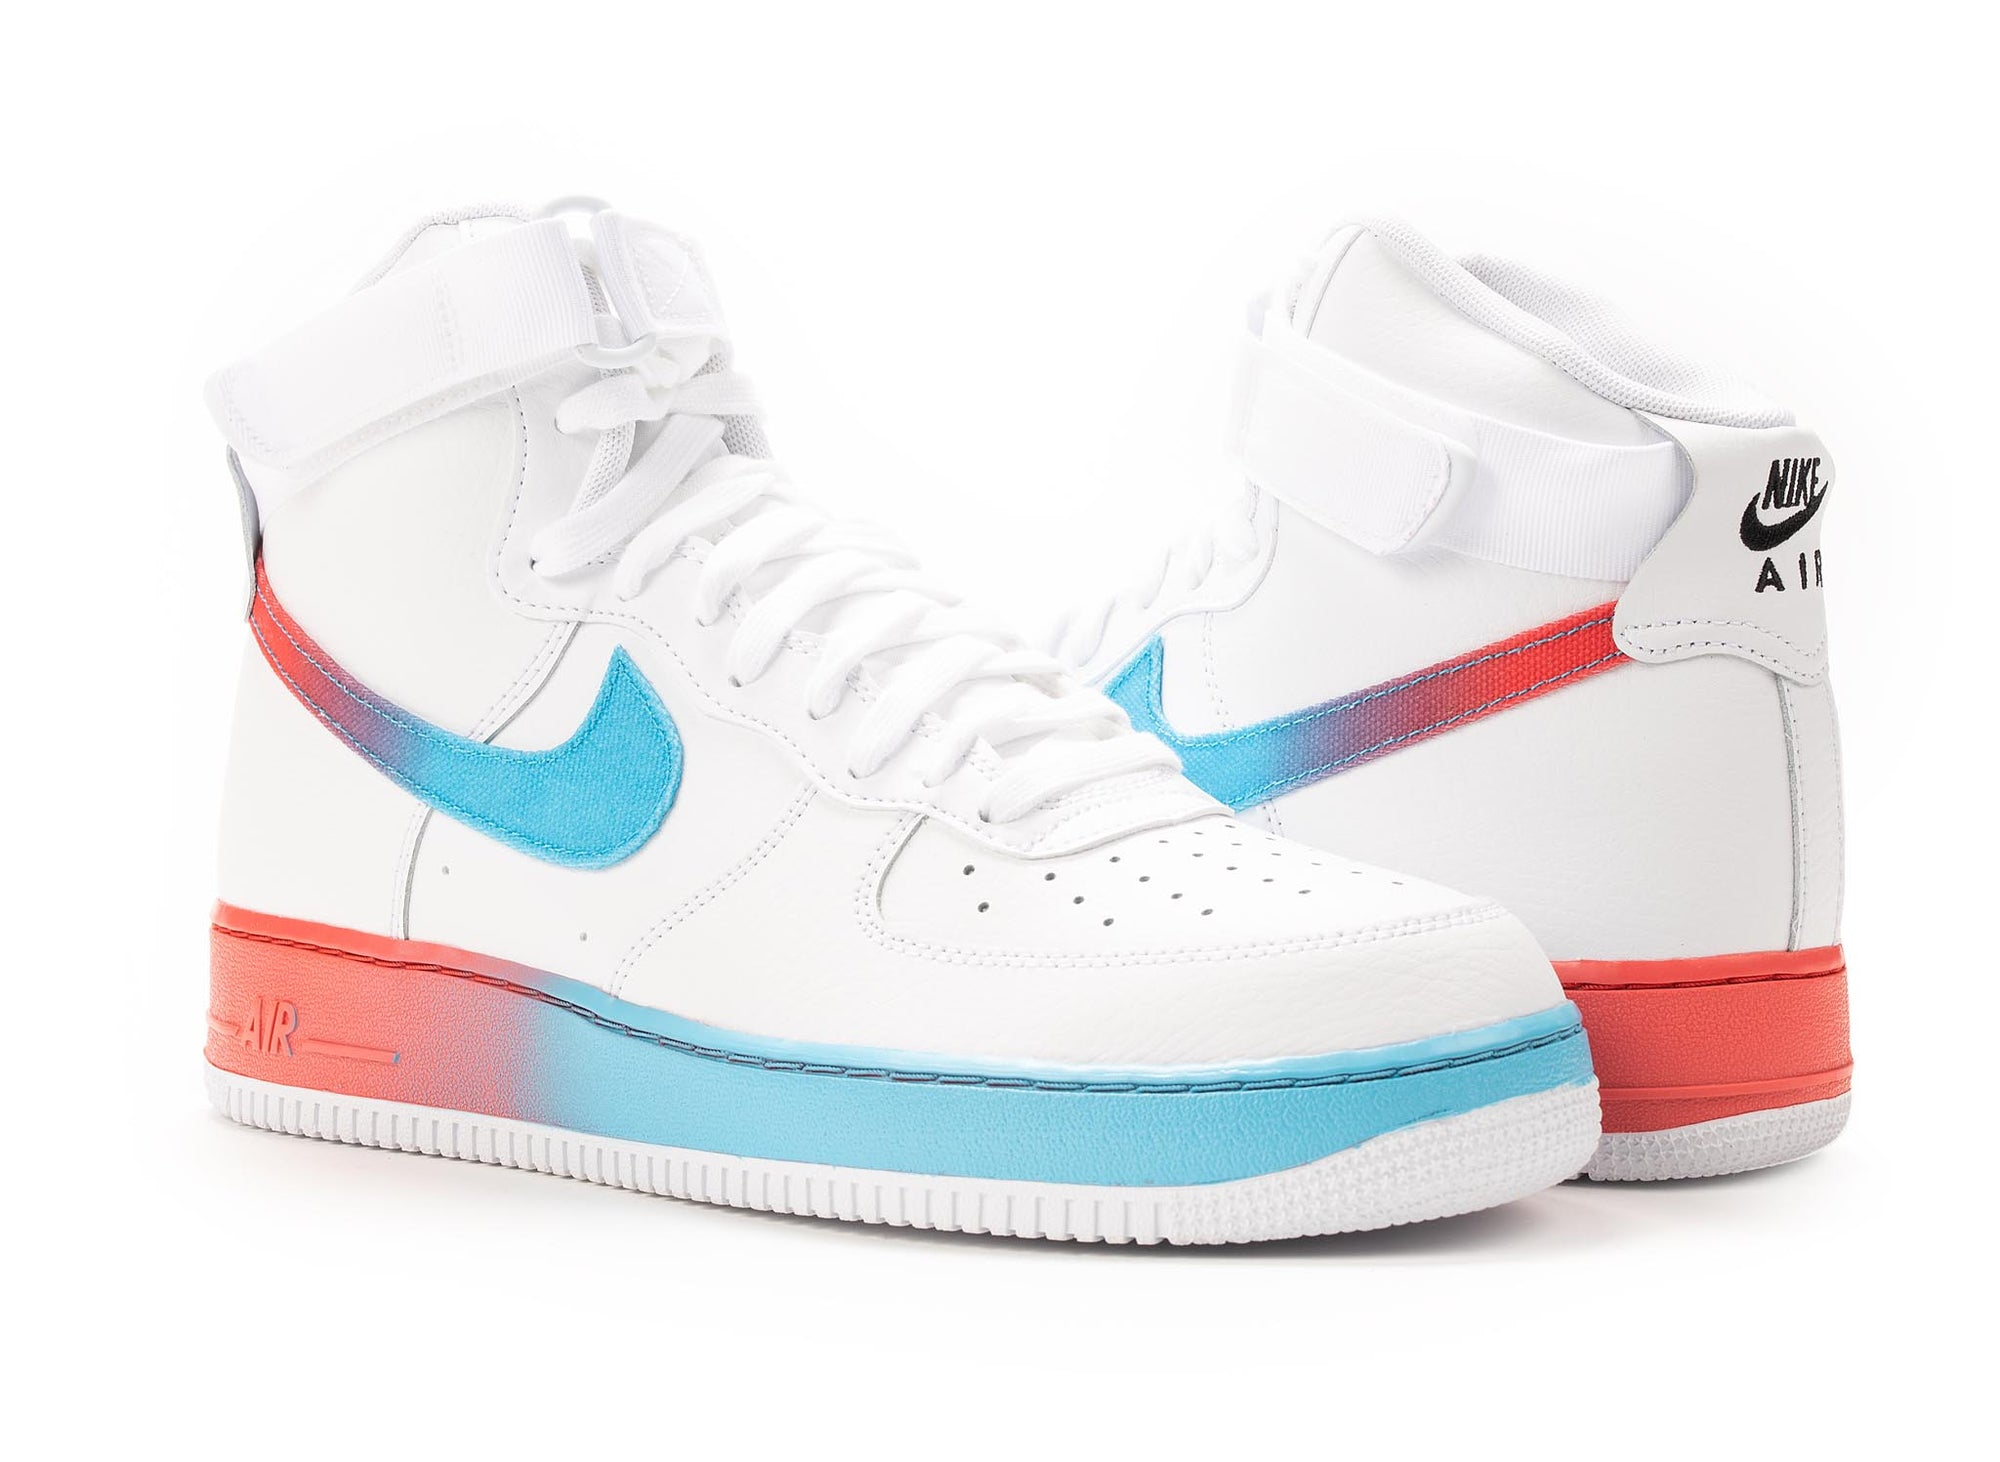 Nike Air Force 1 High 07 Lv8 Ember Glow Oneness Boutique